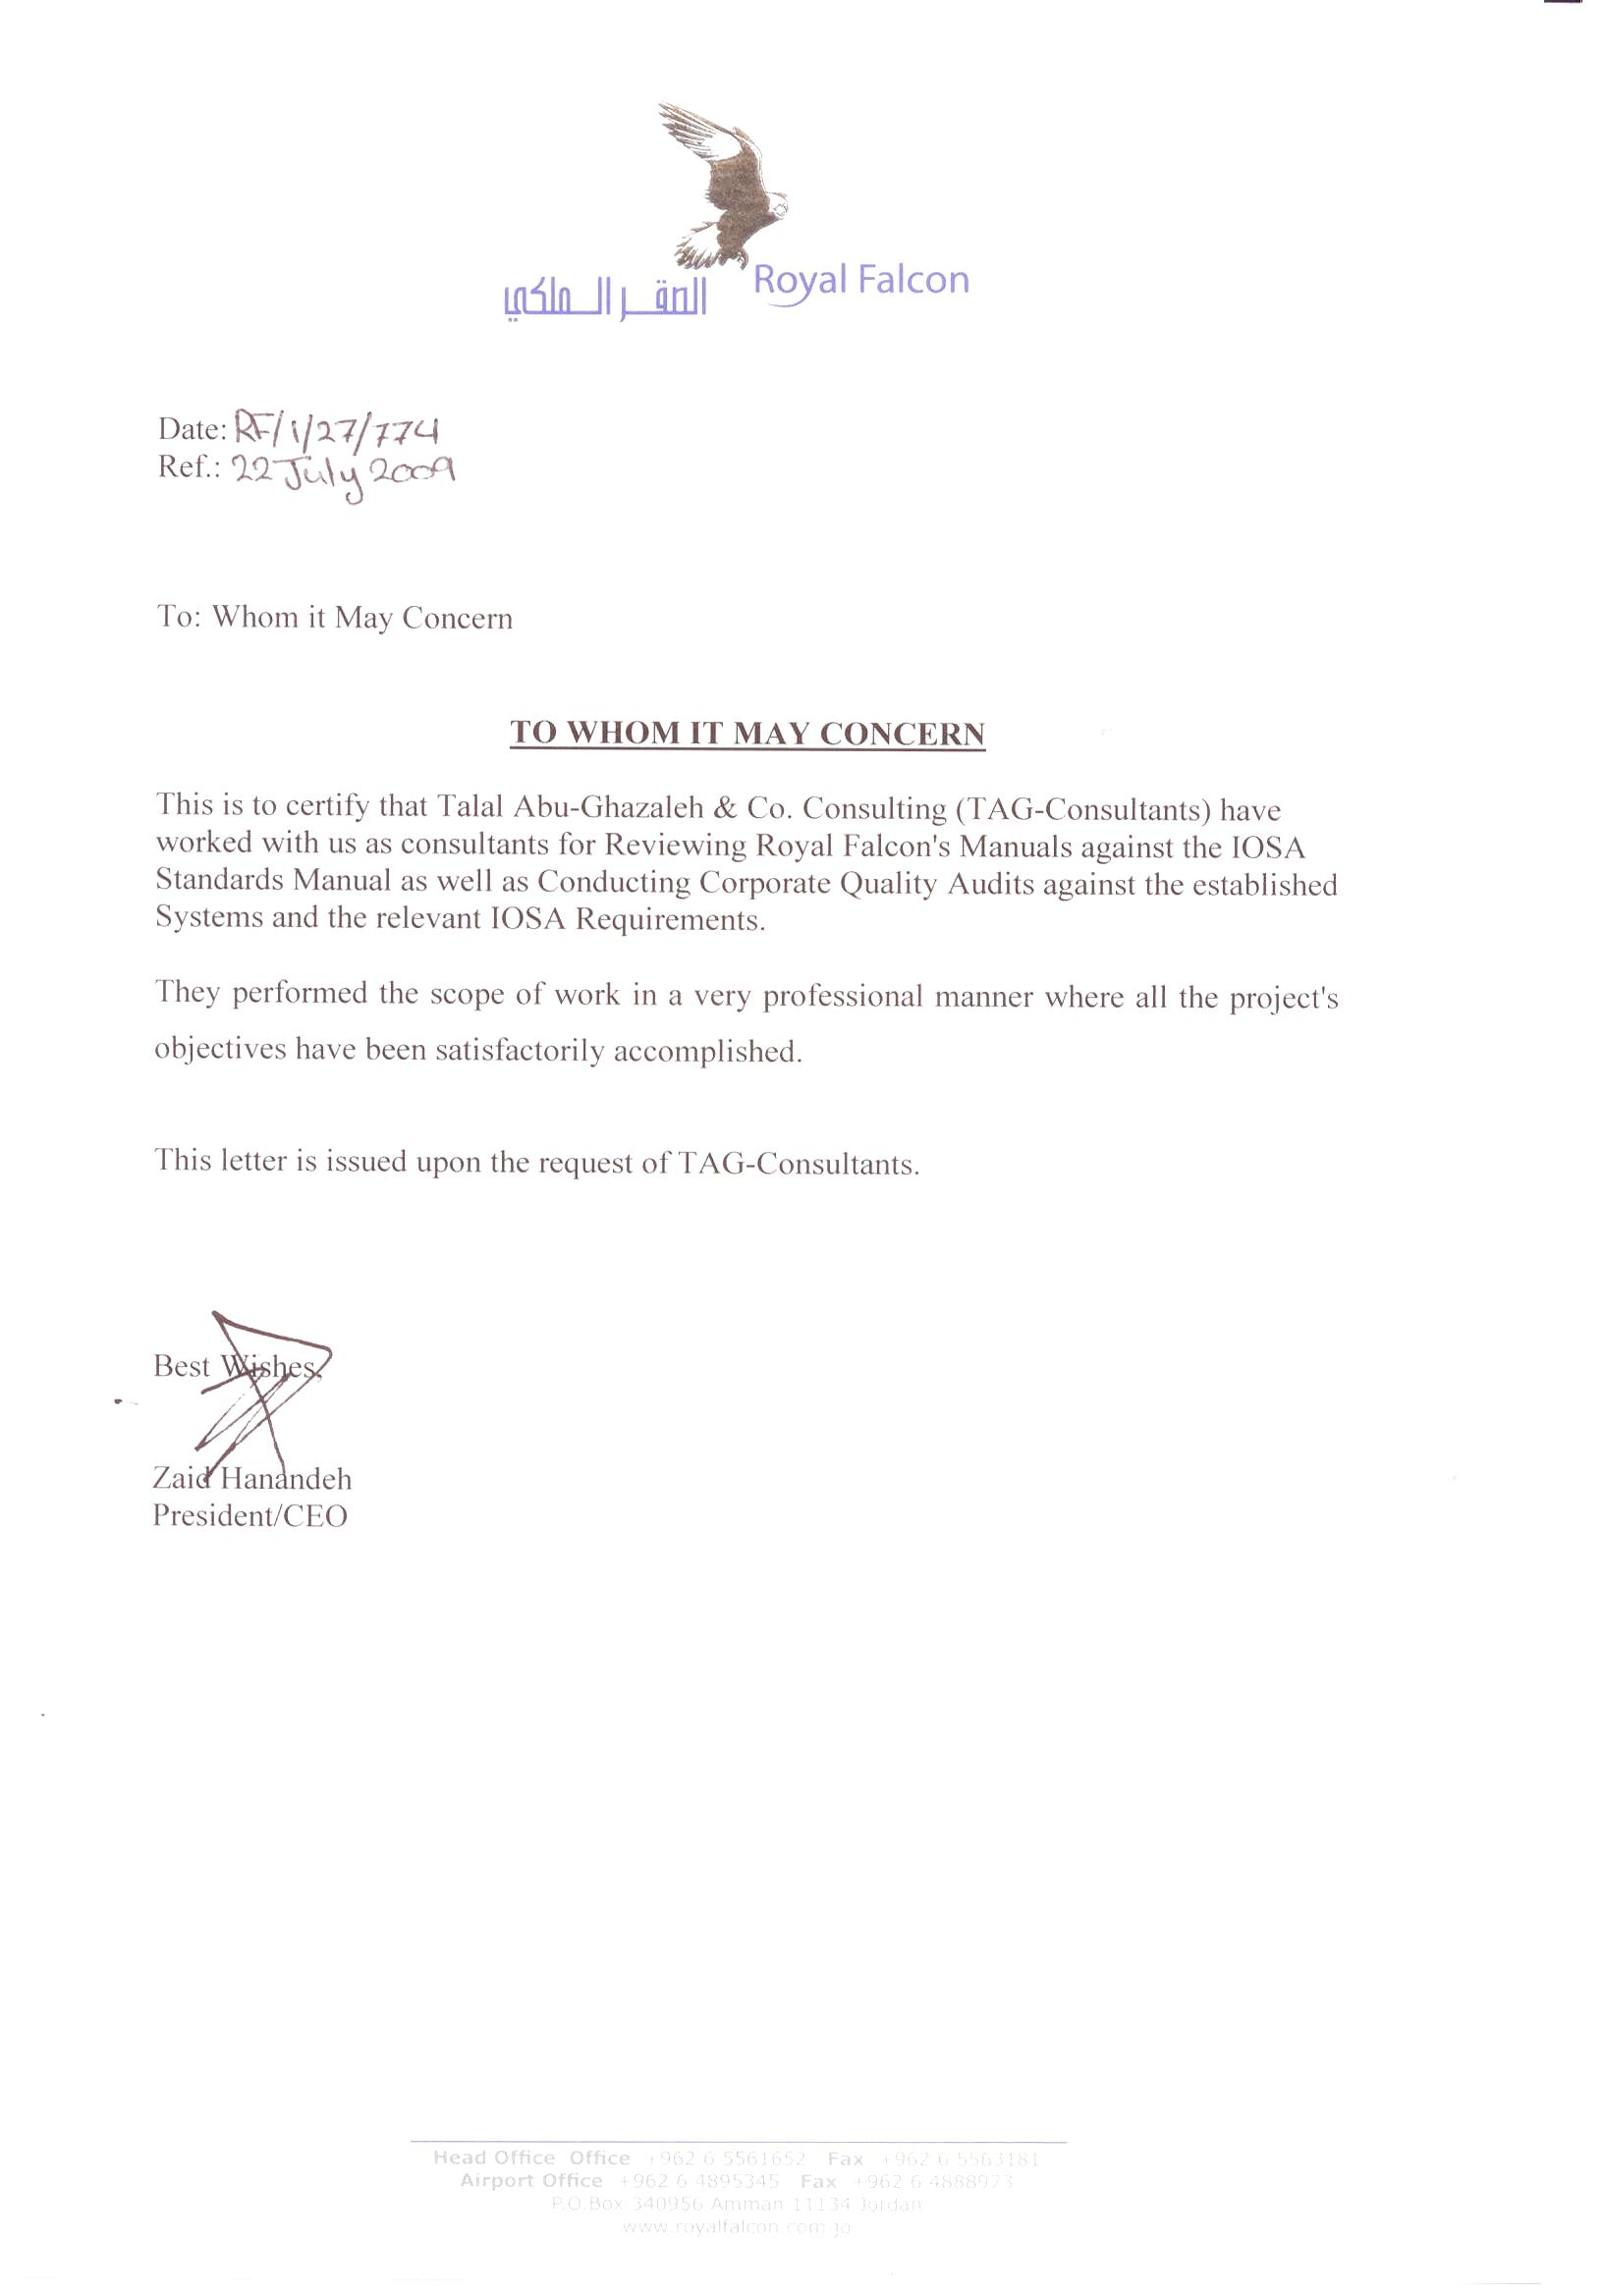 talal abu ghazaleh cambridge information technology skills center thank you letter from mr zaid hanandeh managing director ceo royal falcon aviation to talal abu ghazaleh and co consulting